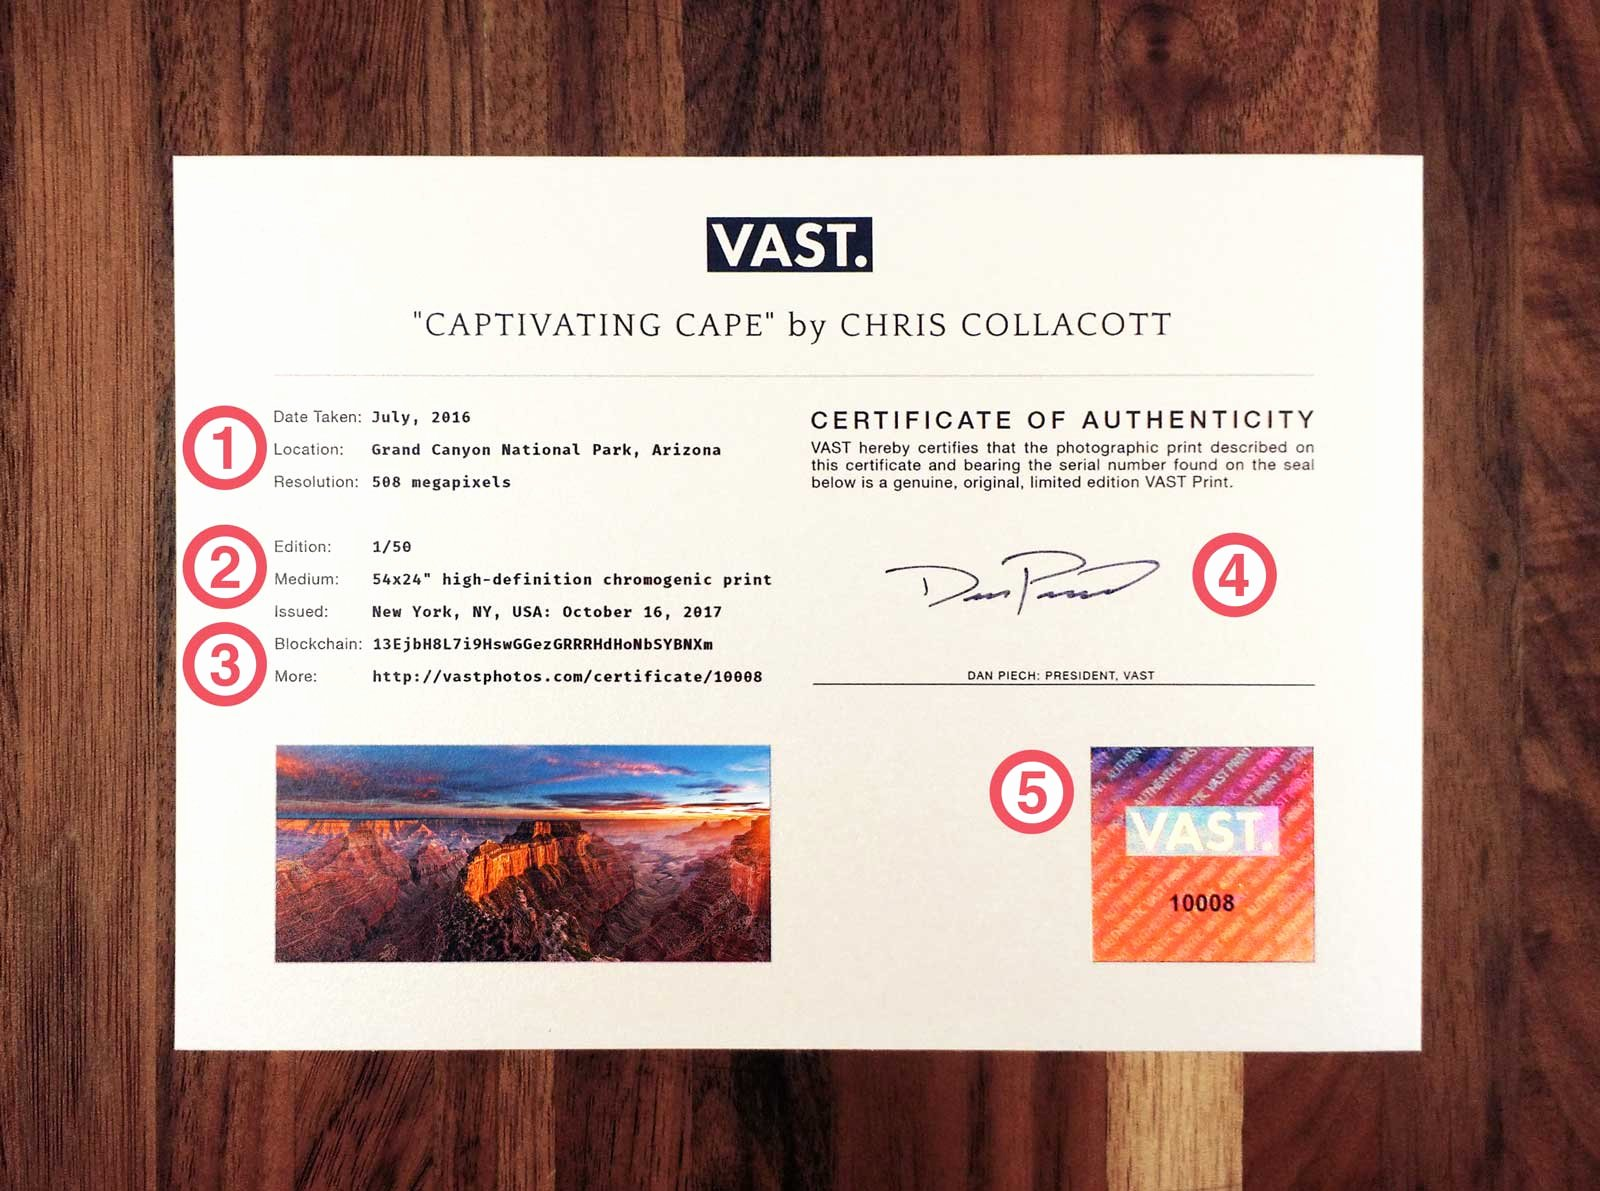 Certificate Of Authenticity for Photography Unique A Look at the Vast Certificate Of Authenticity – Vast Blog